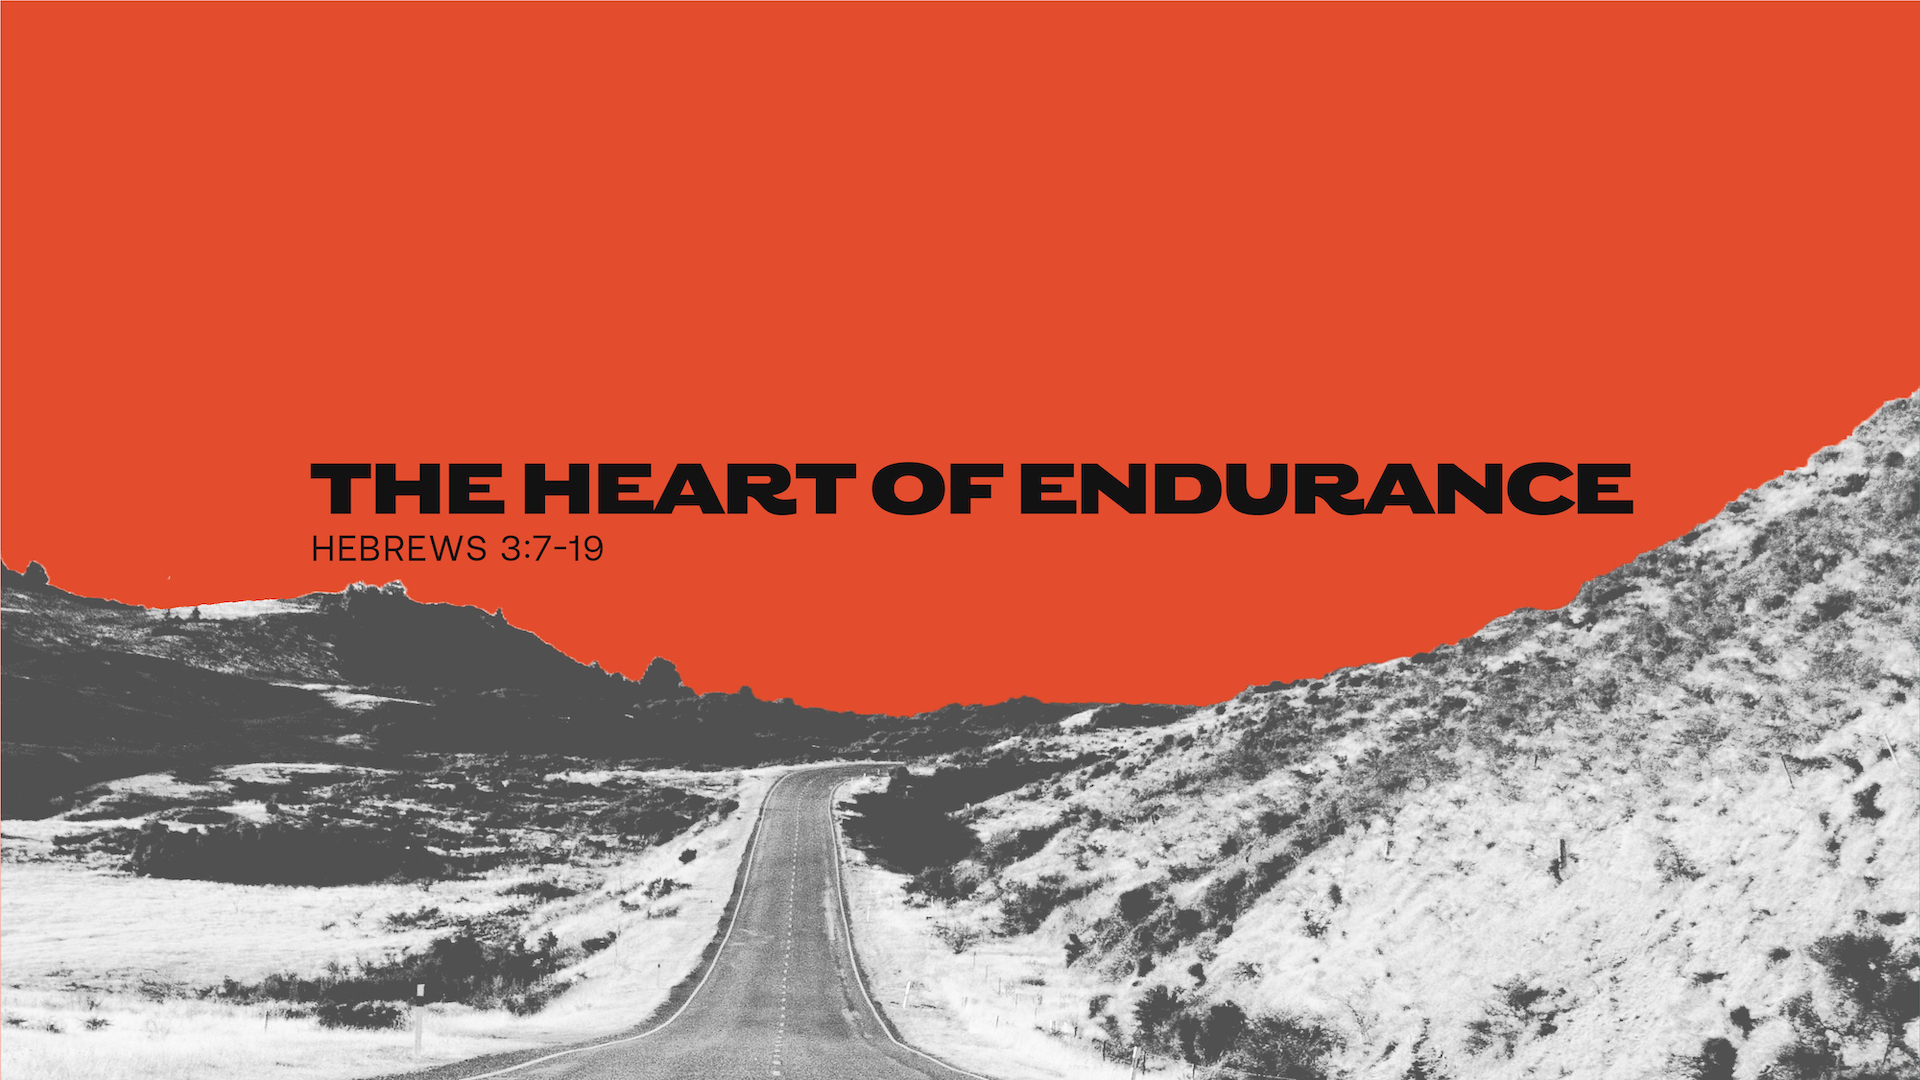 The Heart of Endurance